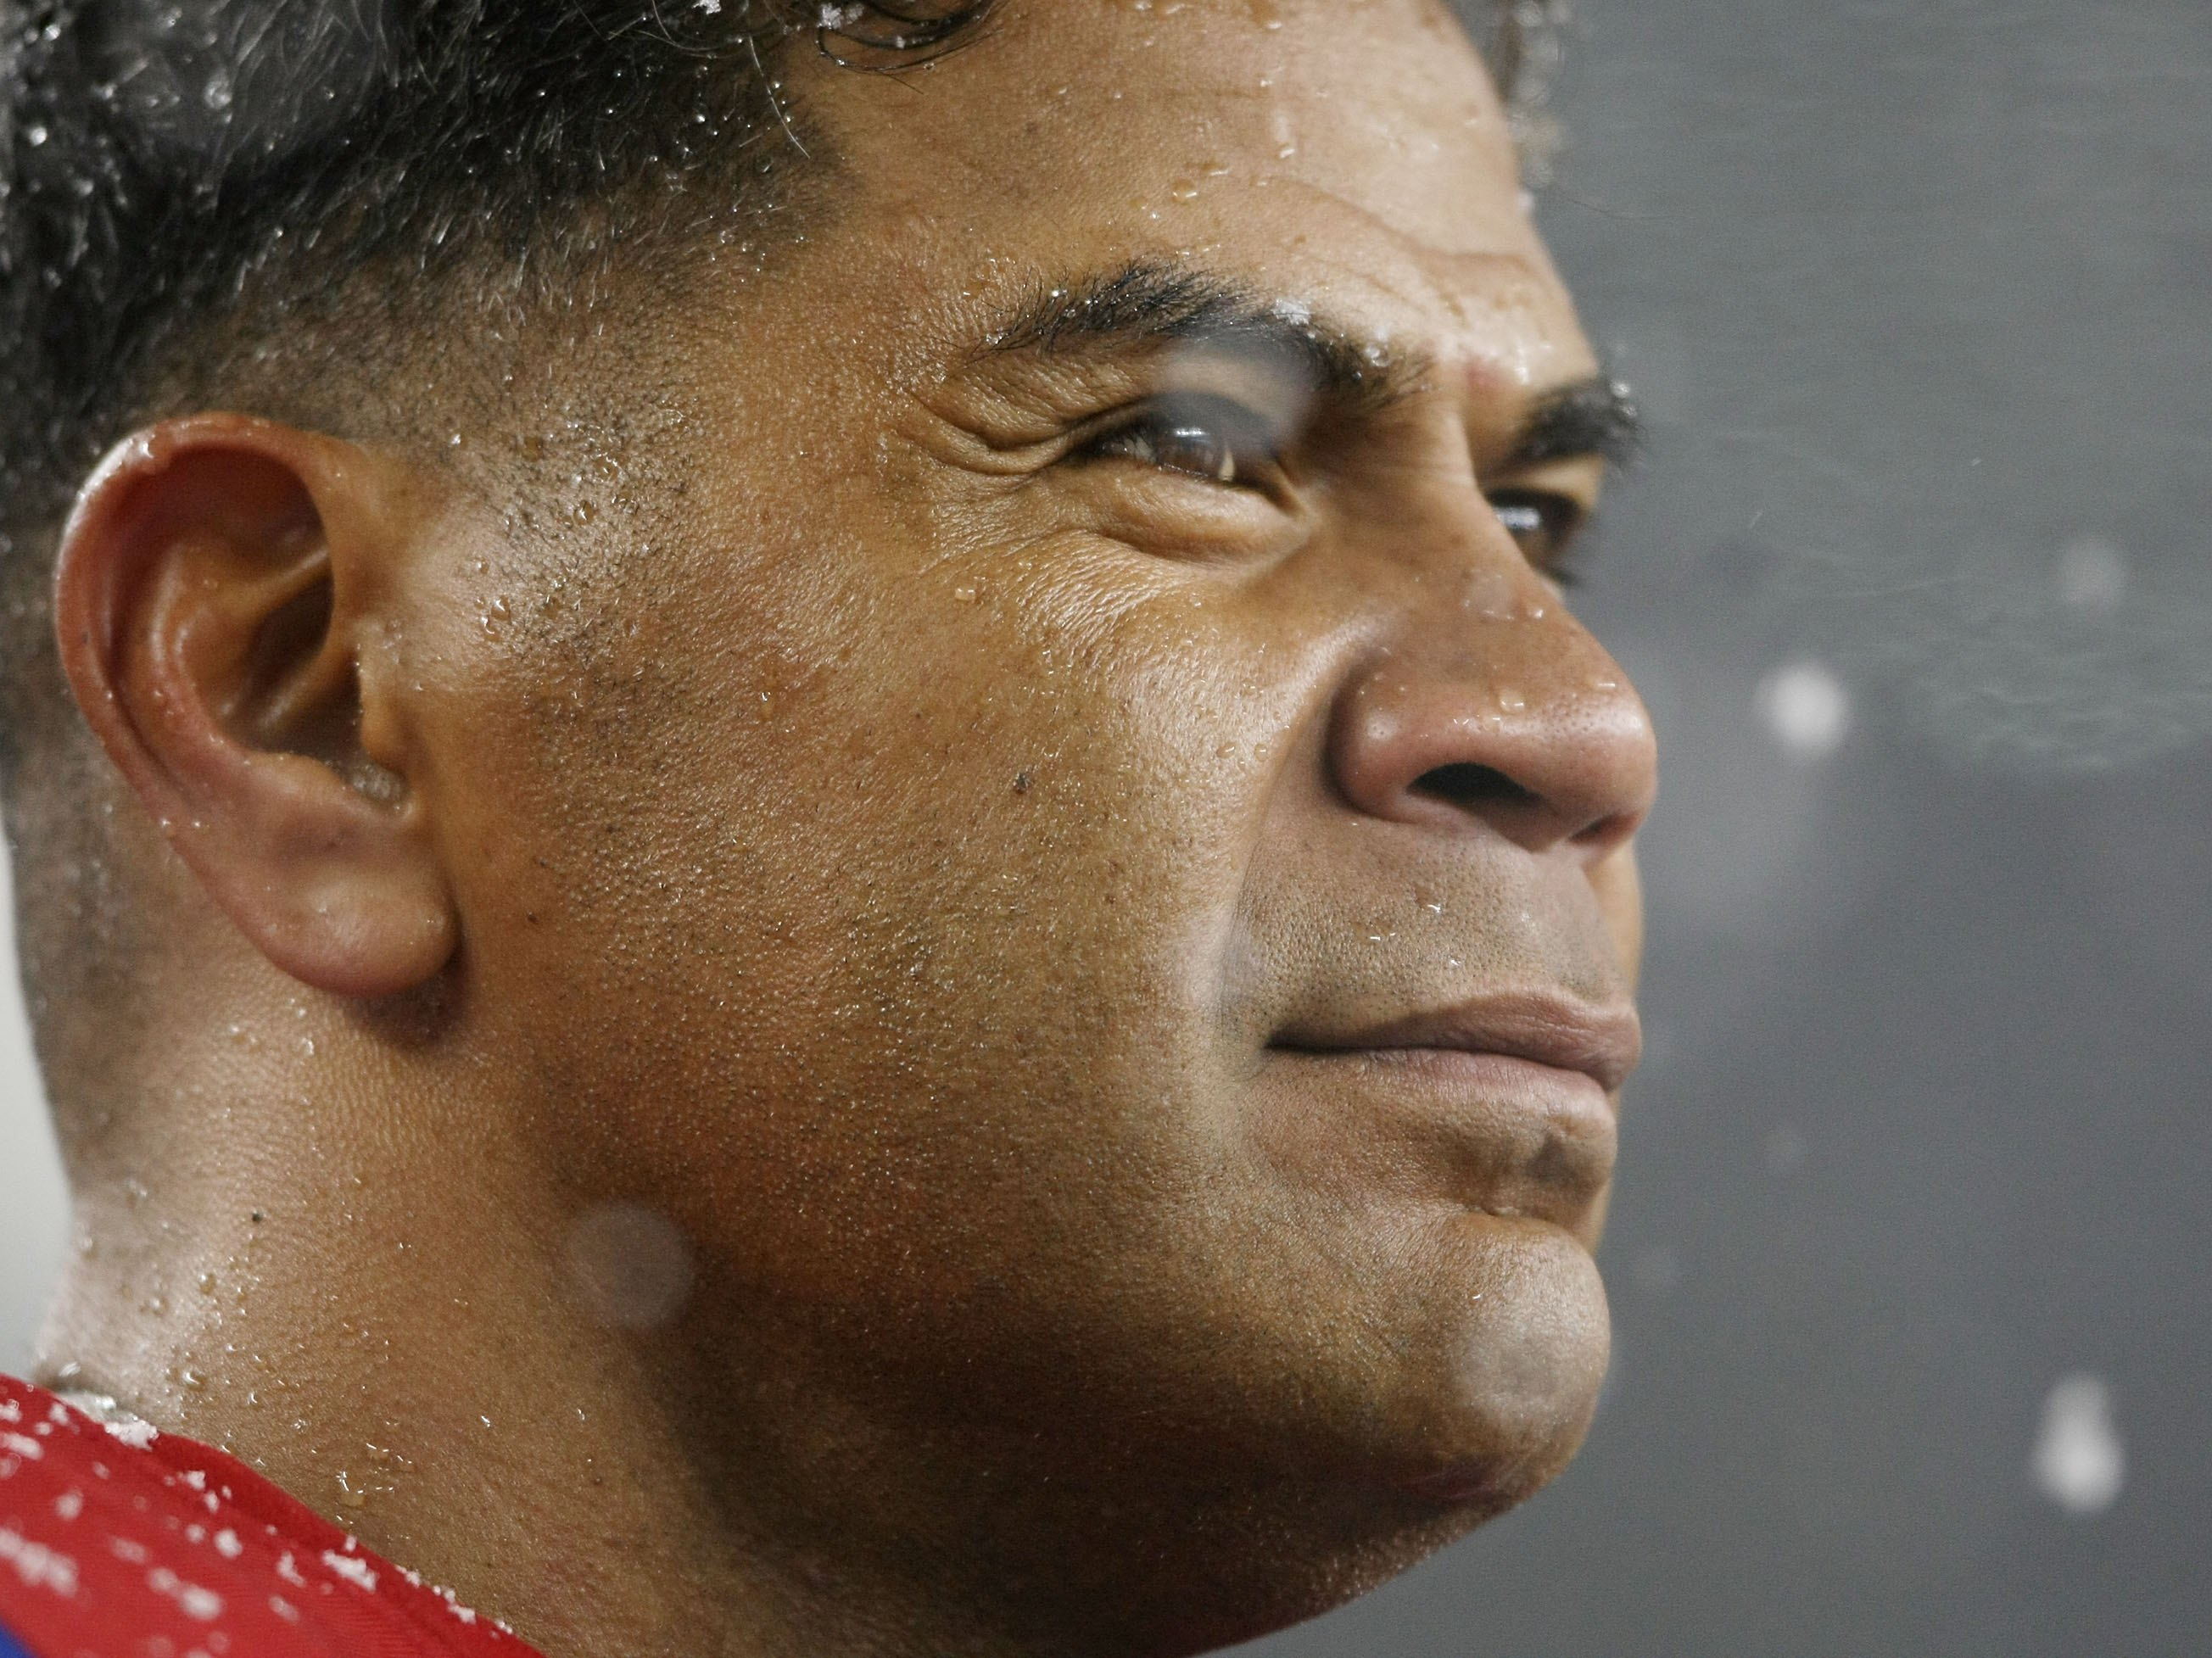 Junior Seau : NPR